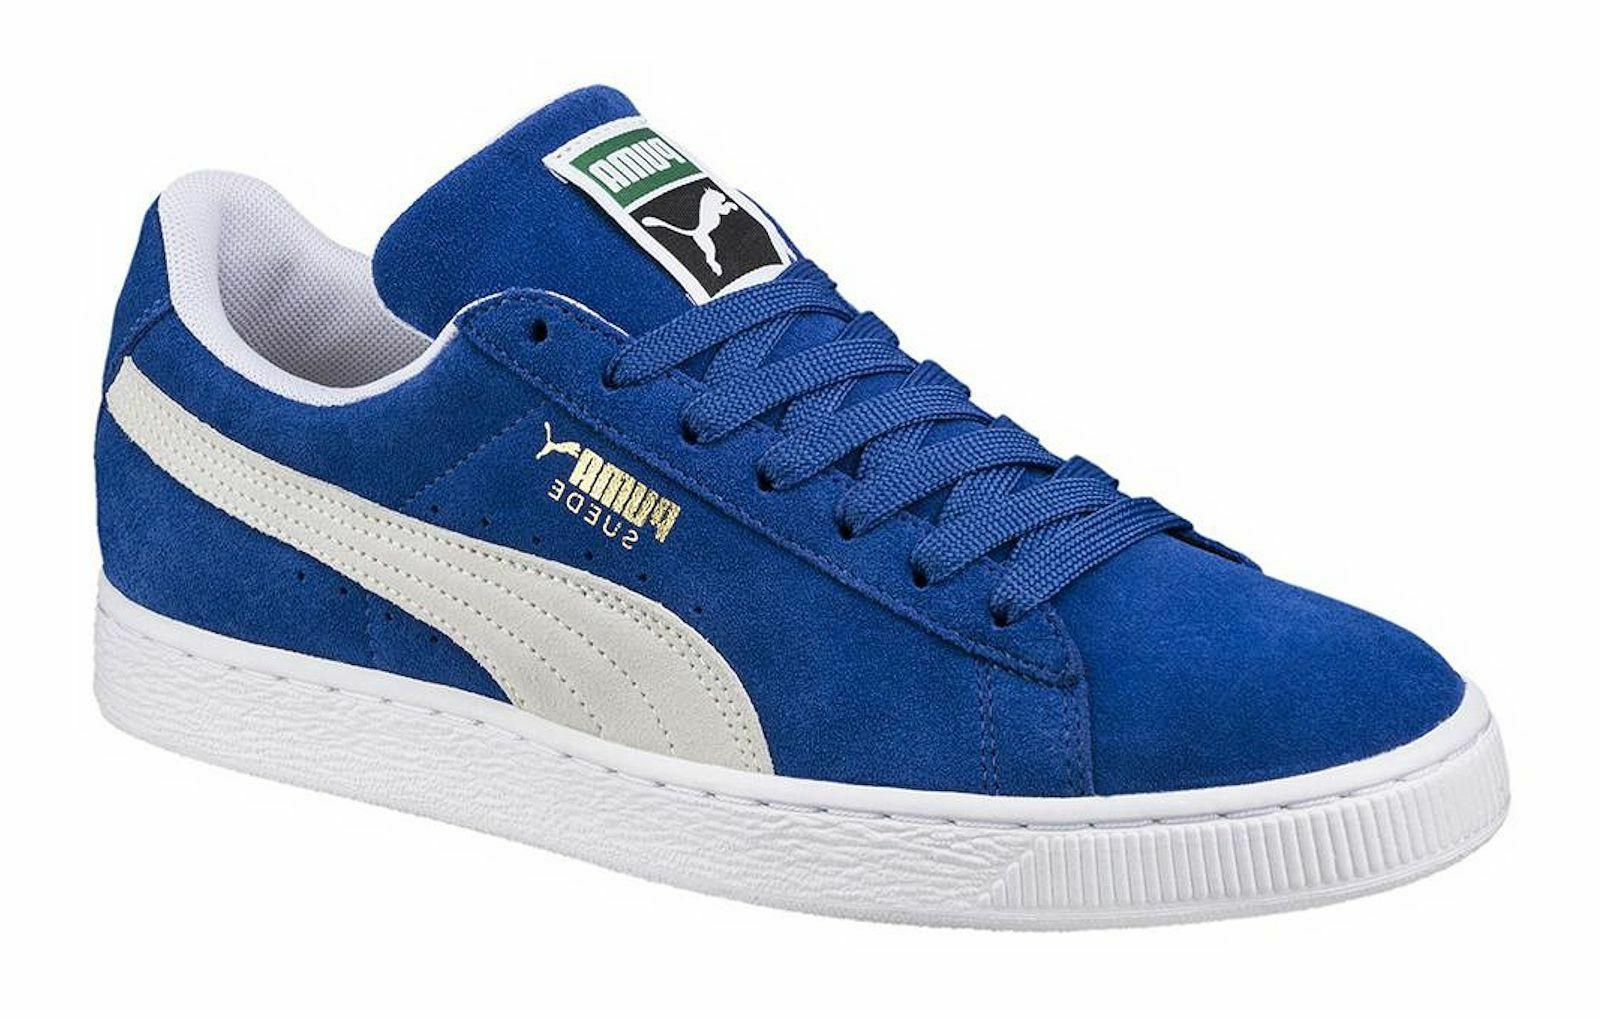 PUMA Suede Olympian Blue, White Mens Sneakers Tennis Shoes 3